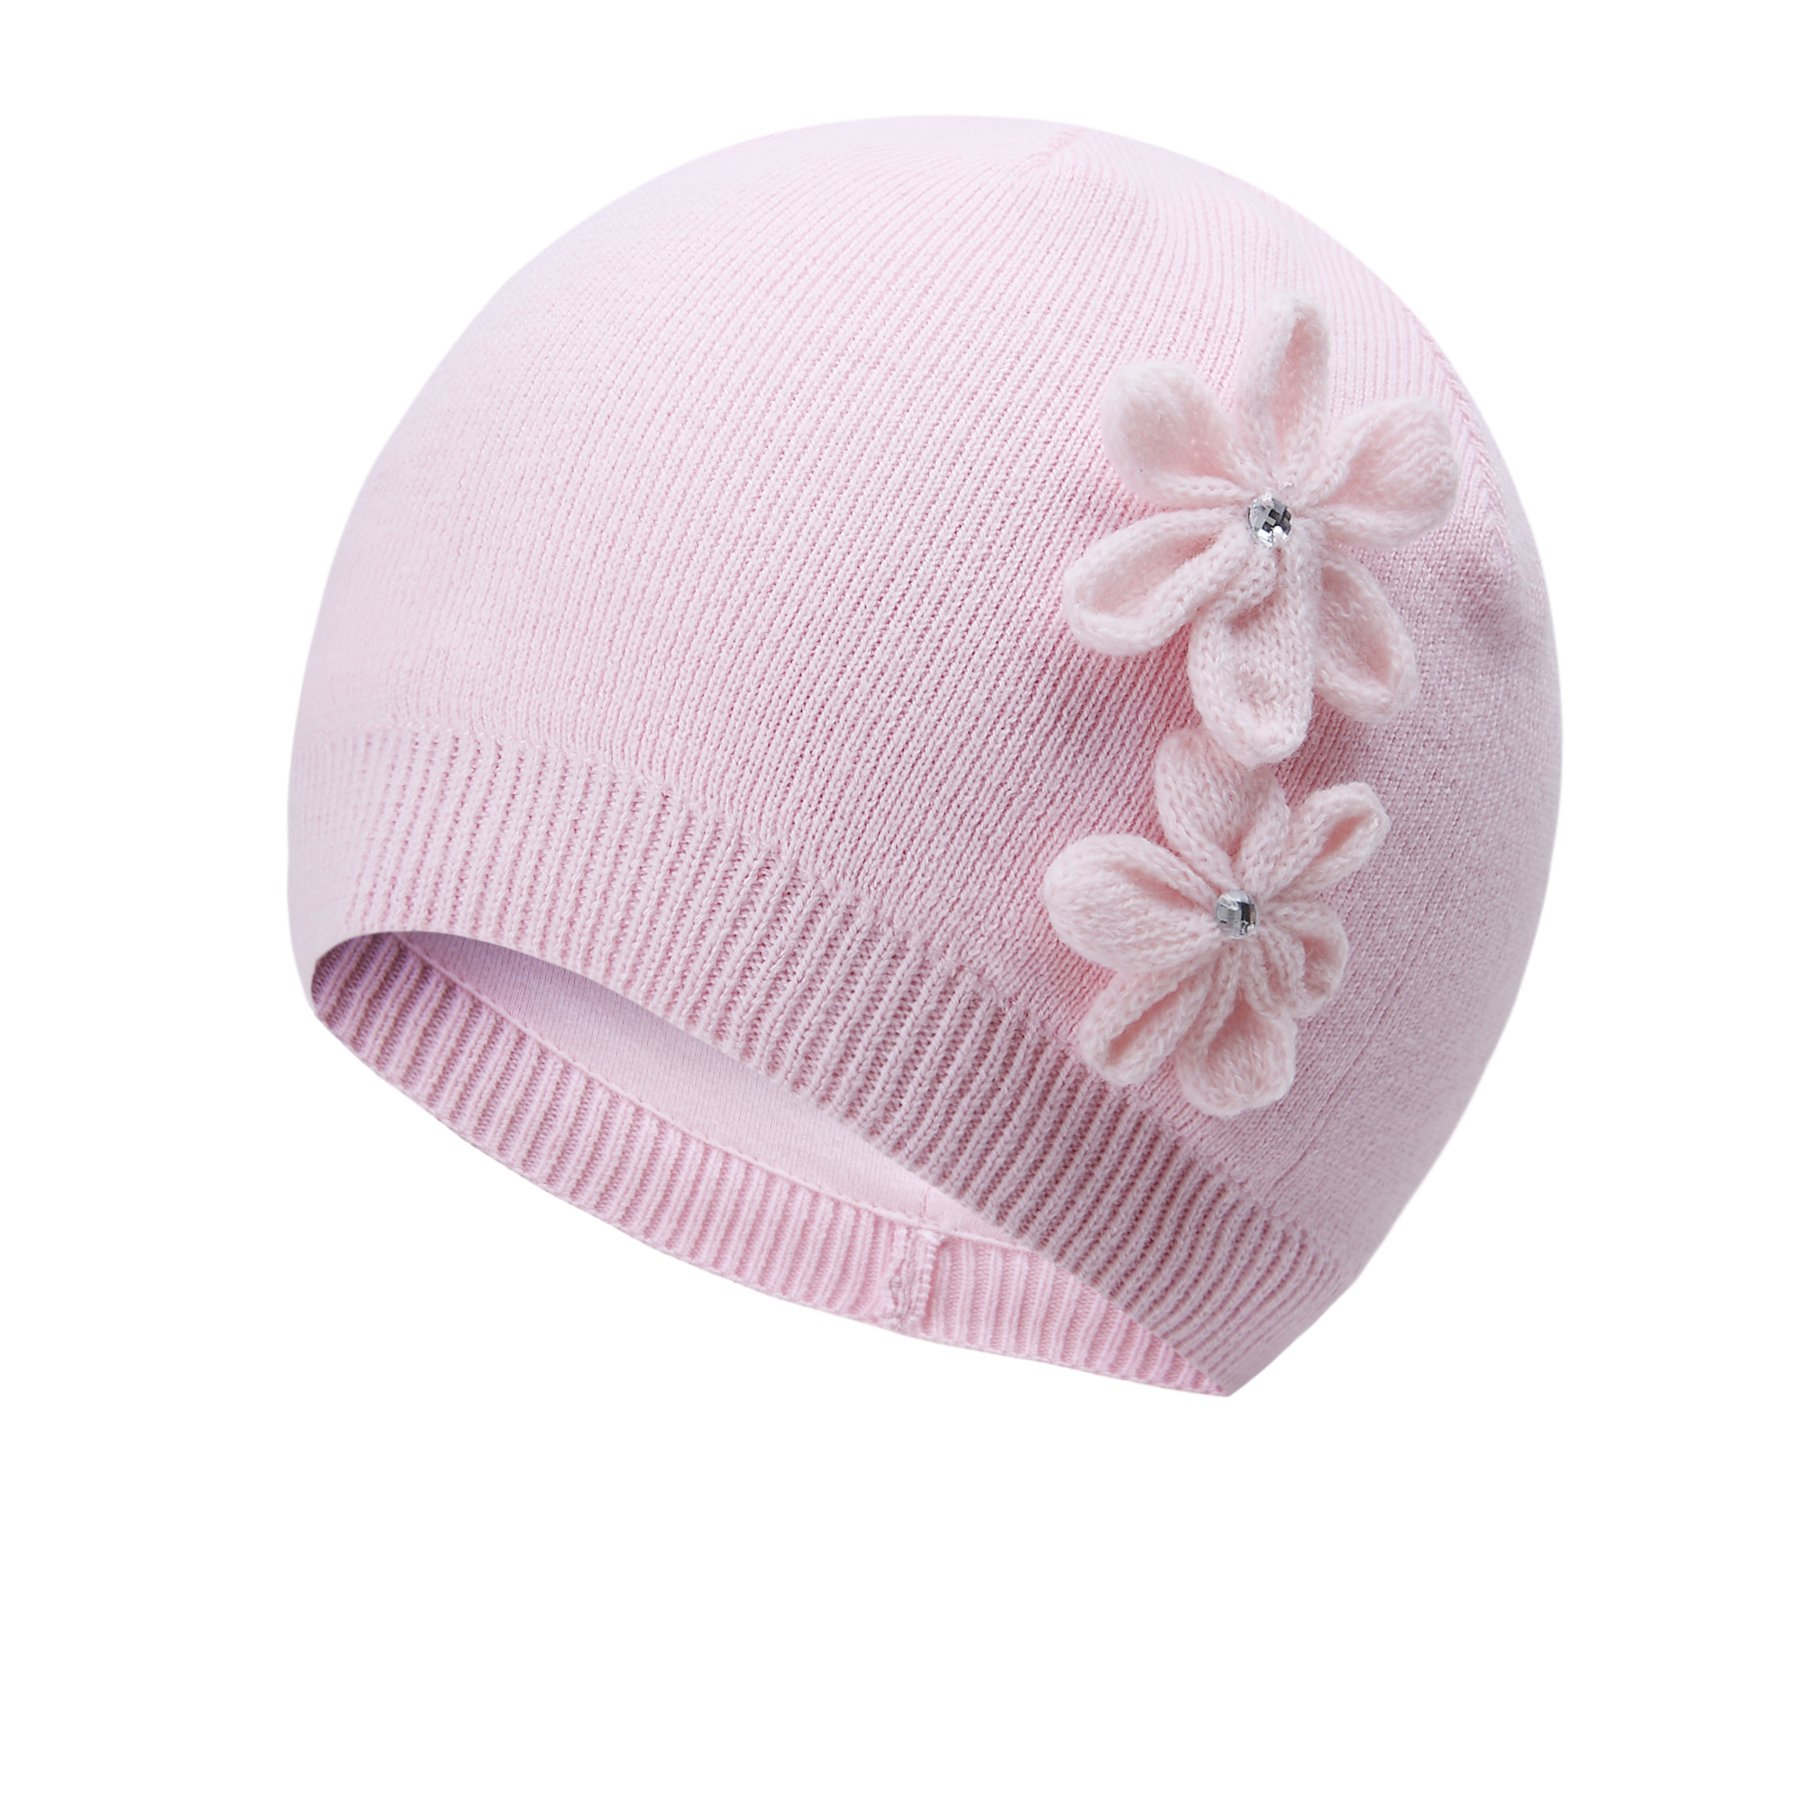 vivobiniya Toddler Girl's Winter Knitted Cap Flower Hat Pink and White 0-6T (1-2Years Old(Head Circumference 17.3in-18.8in), Pink